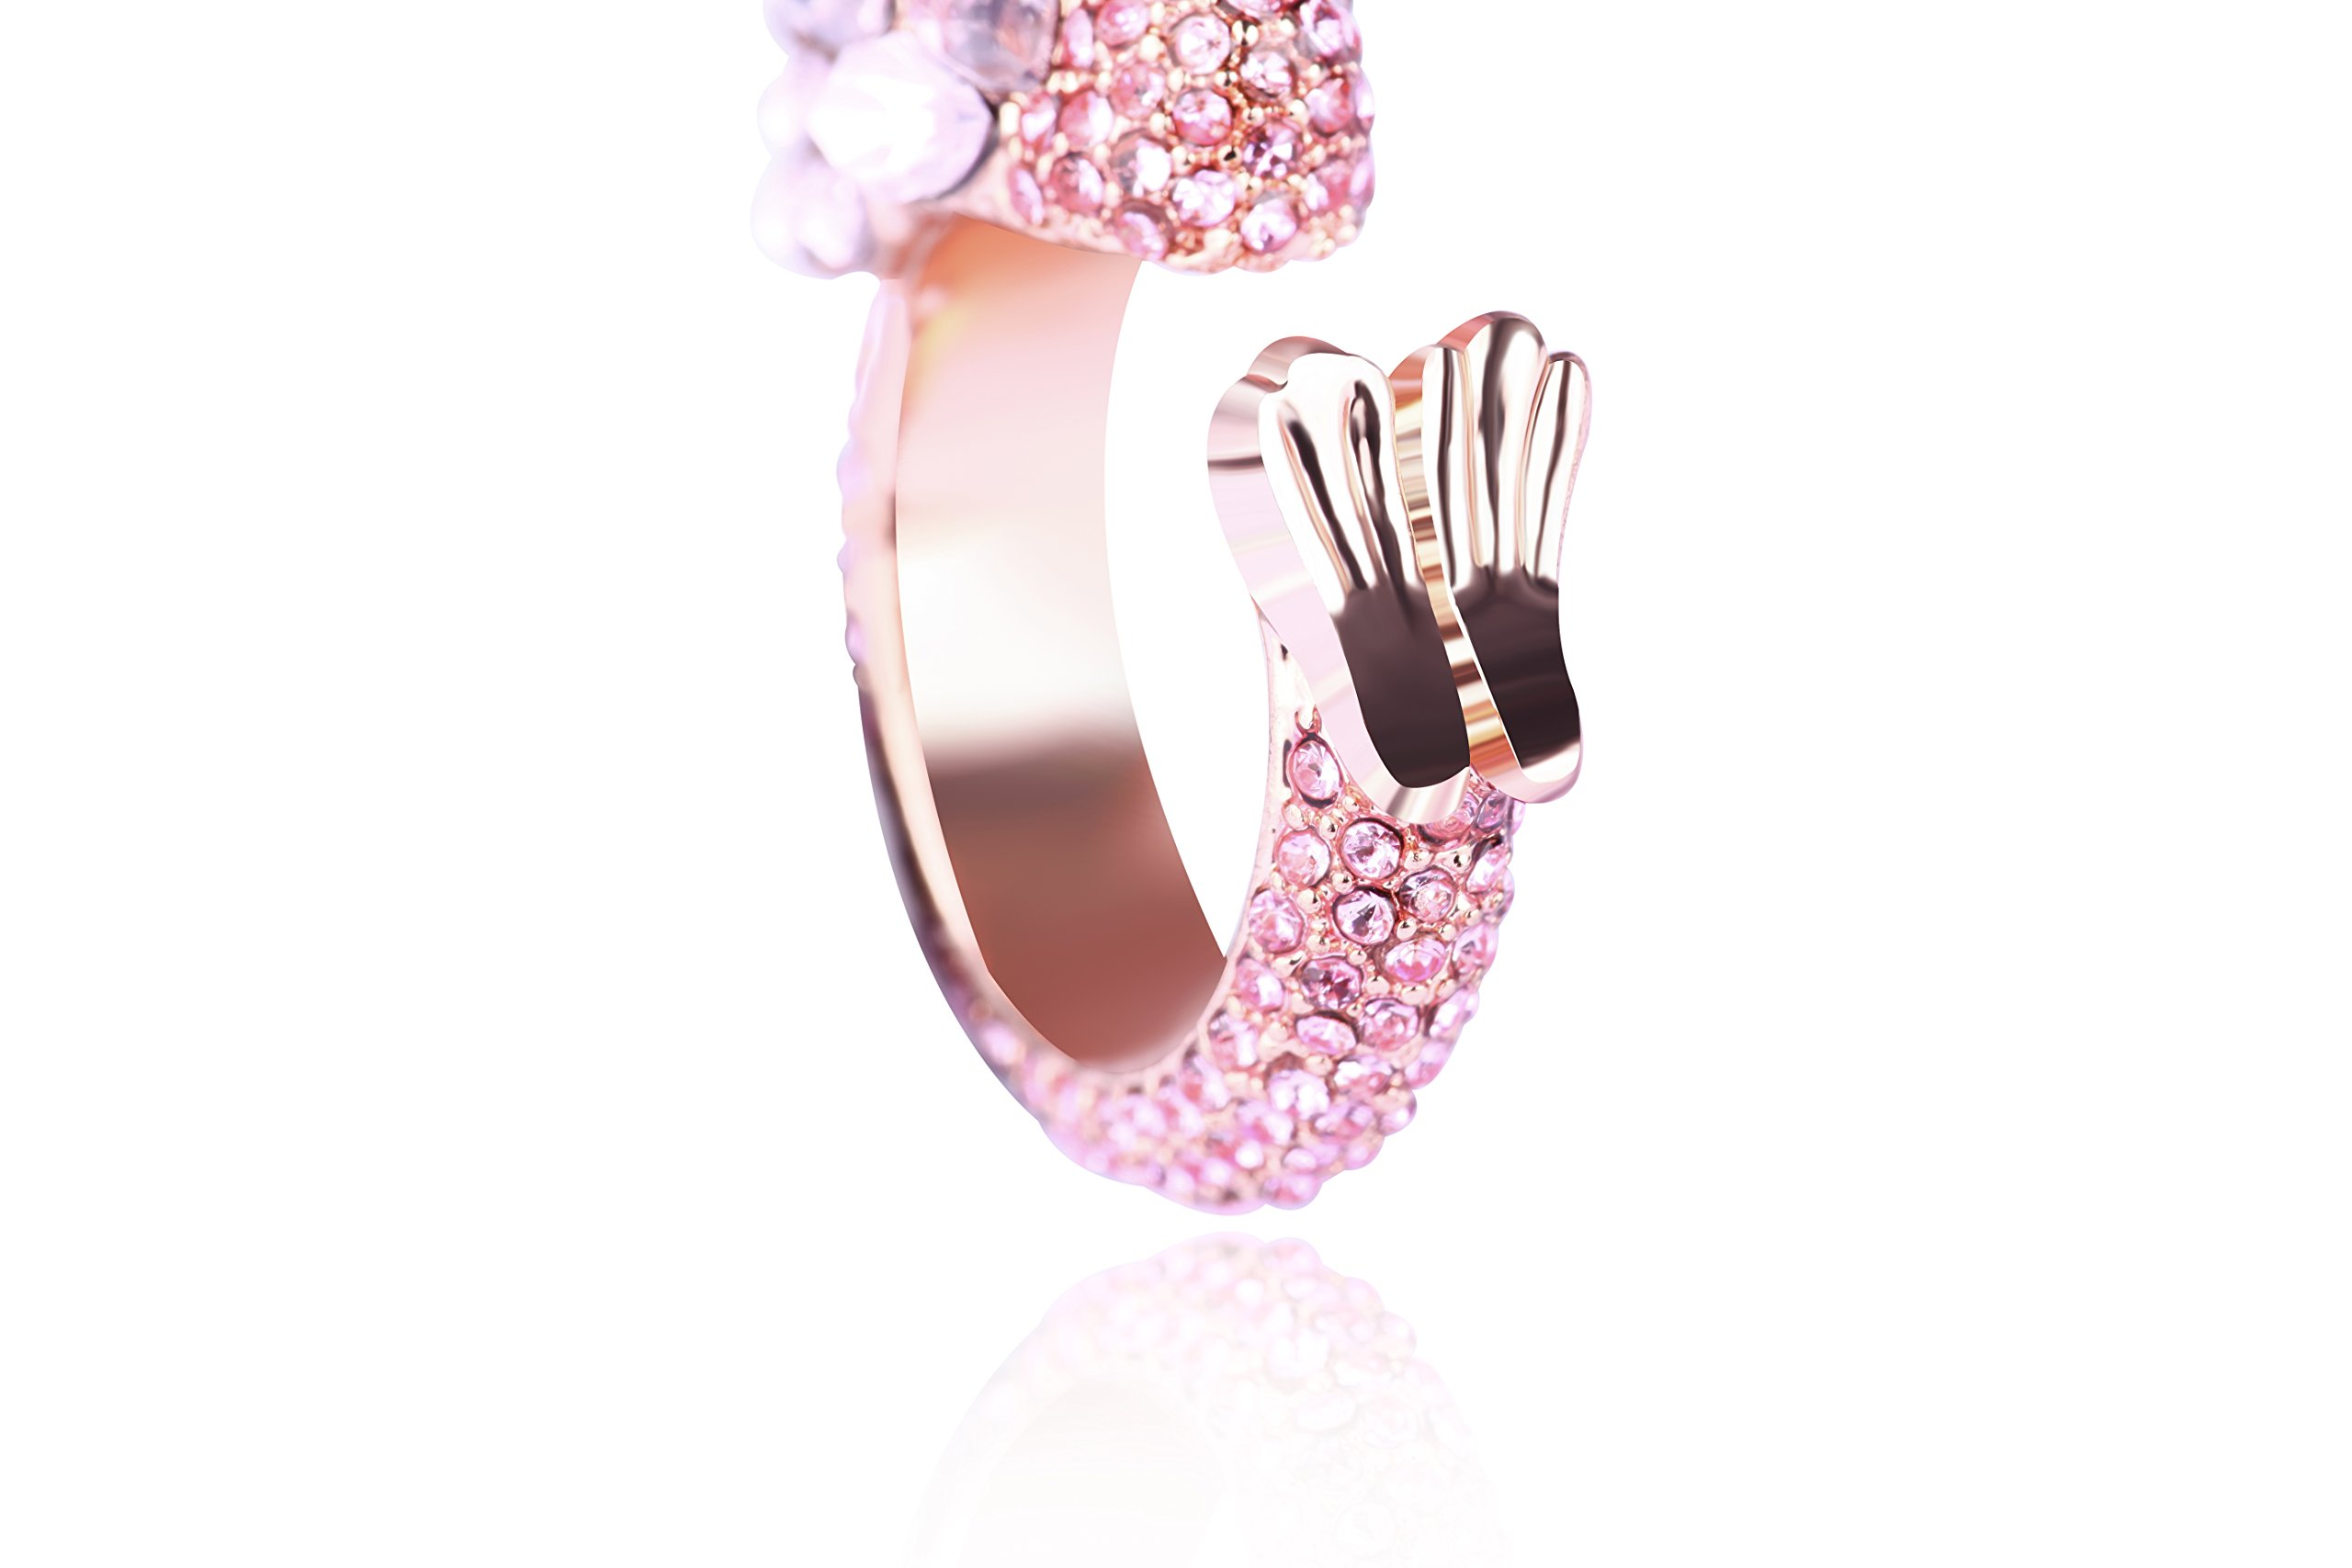 Animal Ring Cute Flamingo for Young Womens Gifts Mom Birthday Teens Girls Party Cuff Statement Ring (Pink) by Paitse (Image #5)